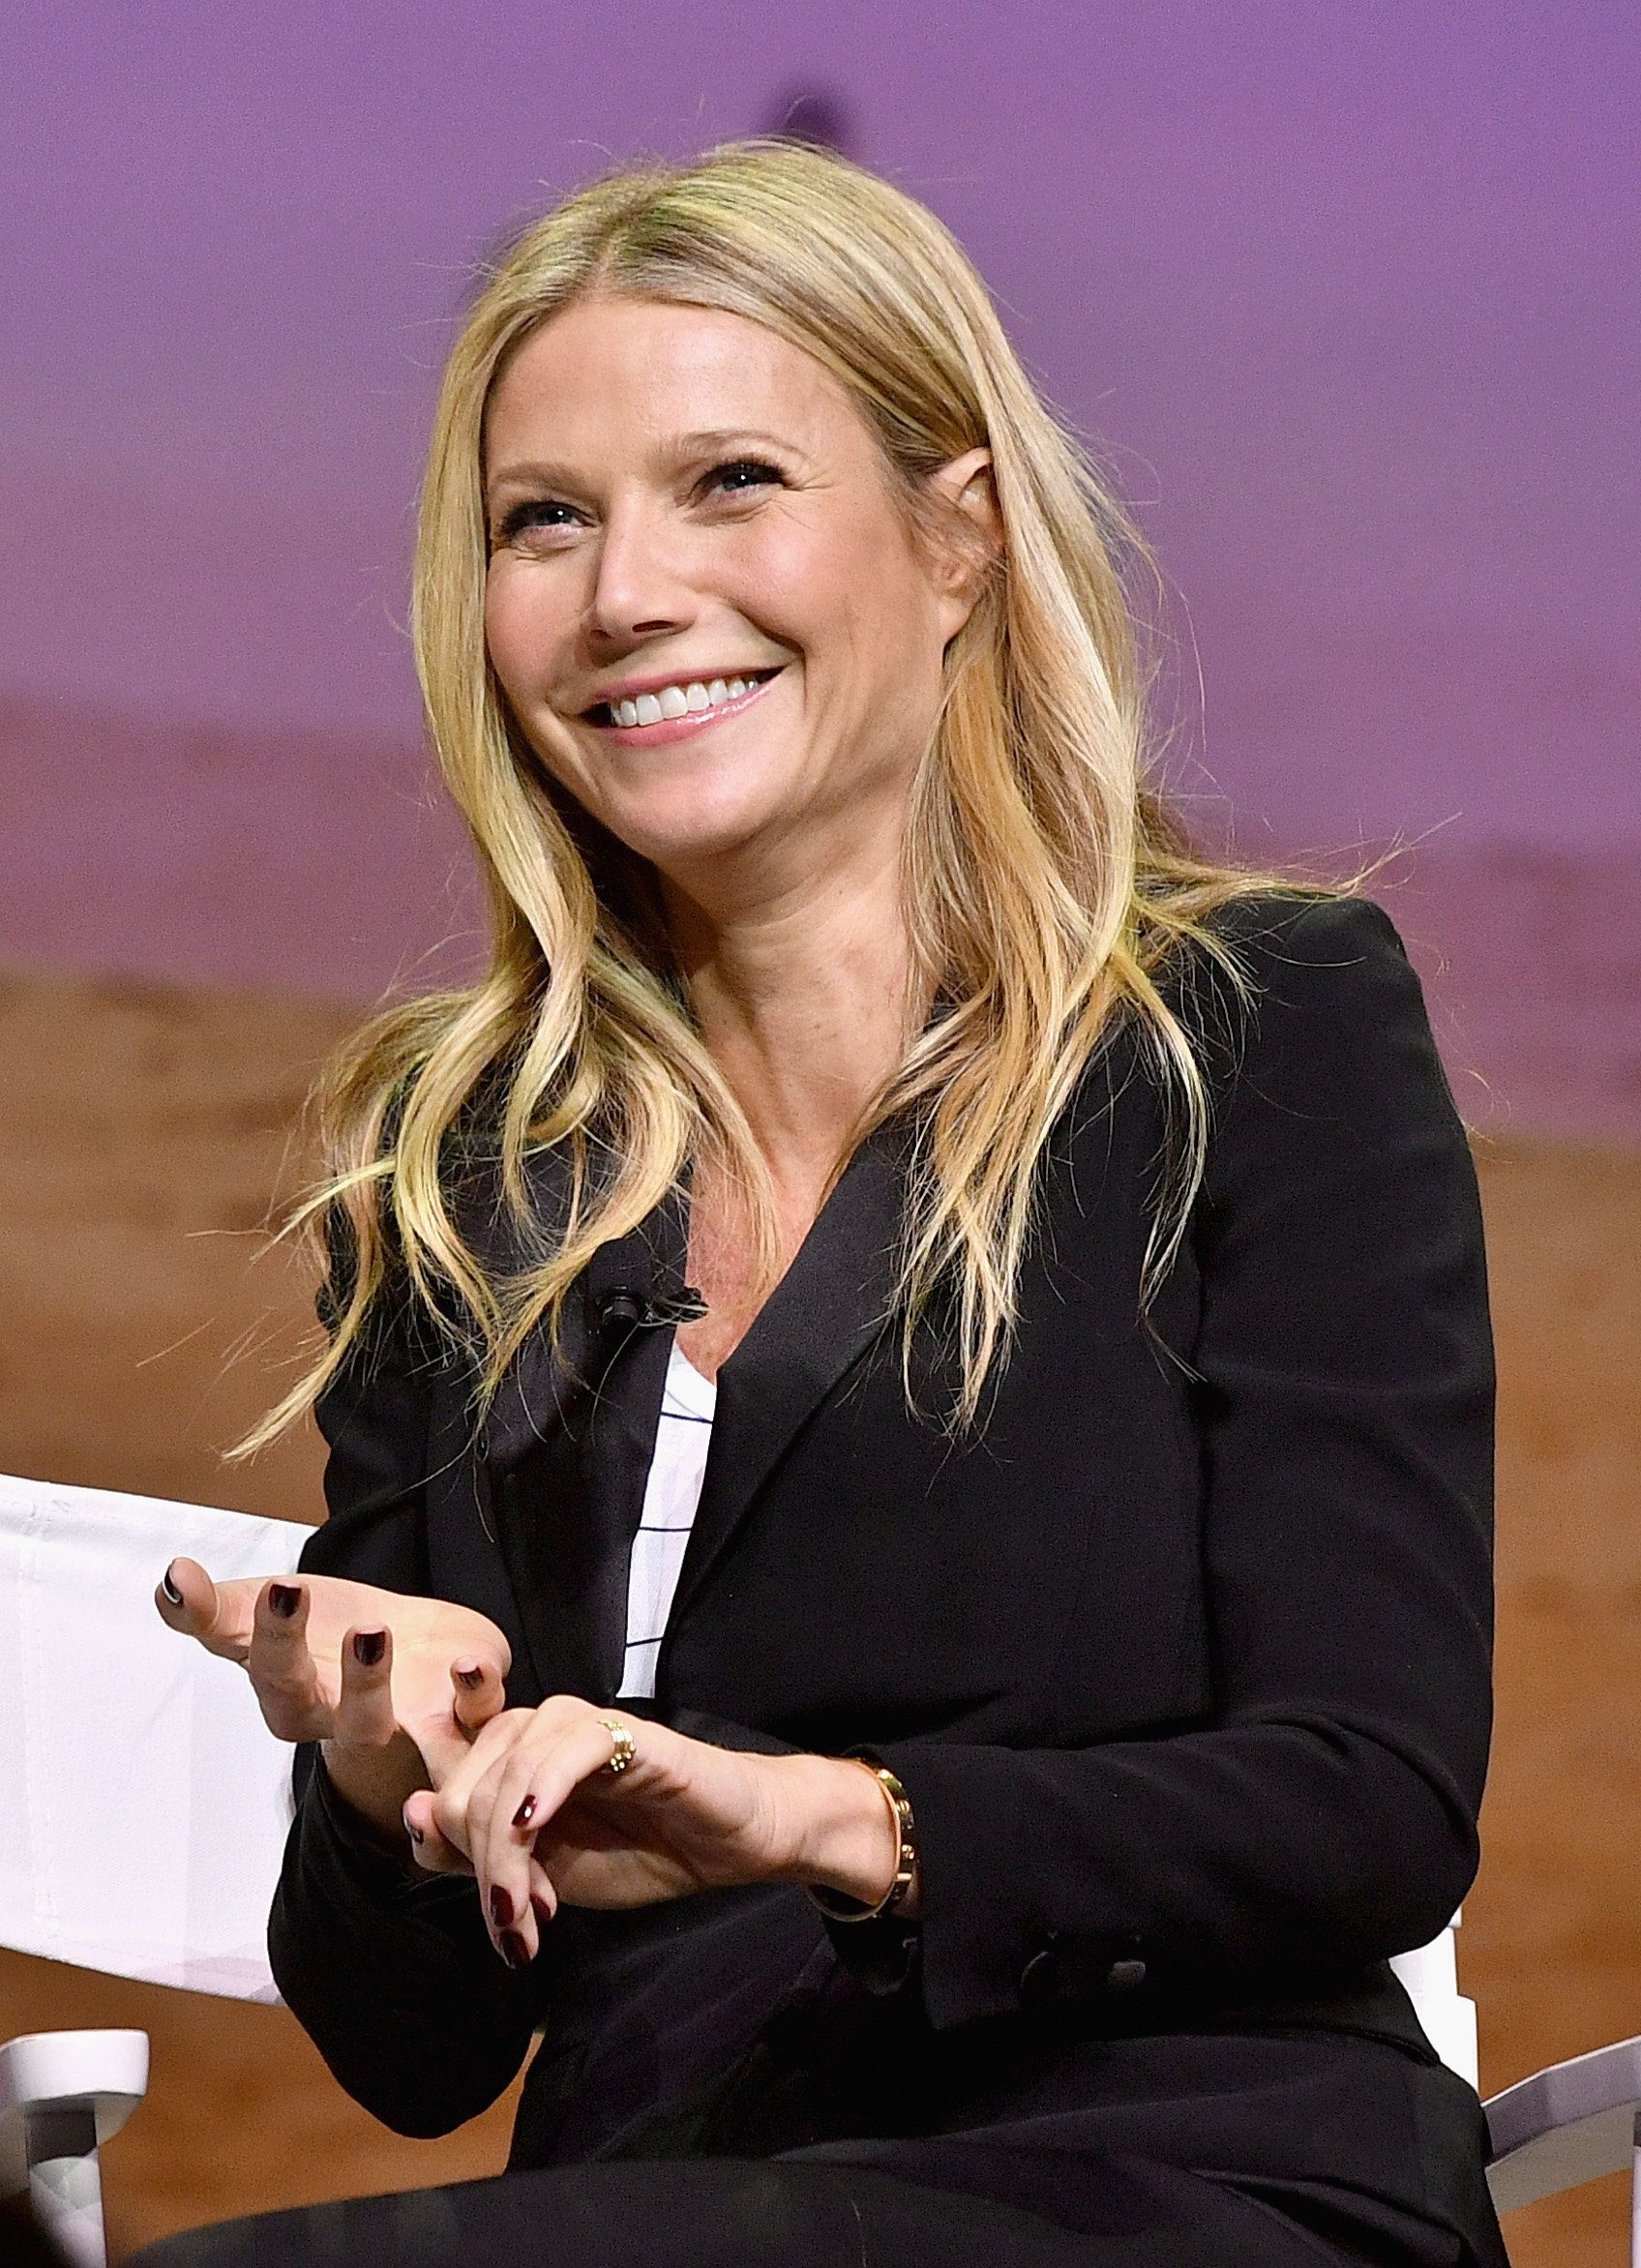 LOS ANGELES, CA - NOVEMBER 19:  Actress and Founder of goop, Gwyneth Paltrow speaks onstage at Cultivating the Art of Taste & Style at the Los Angeles Theatre during Airbnb Open LA - Day 3 on November 19, 2016 in Los Angeles, California.  (Photo by Mike Windle/Getty Images for Airbnb)